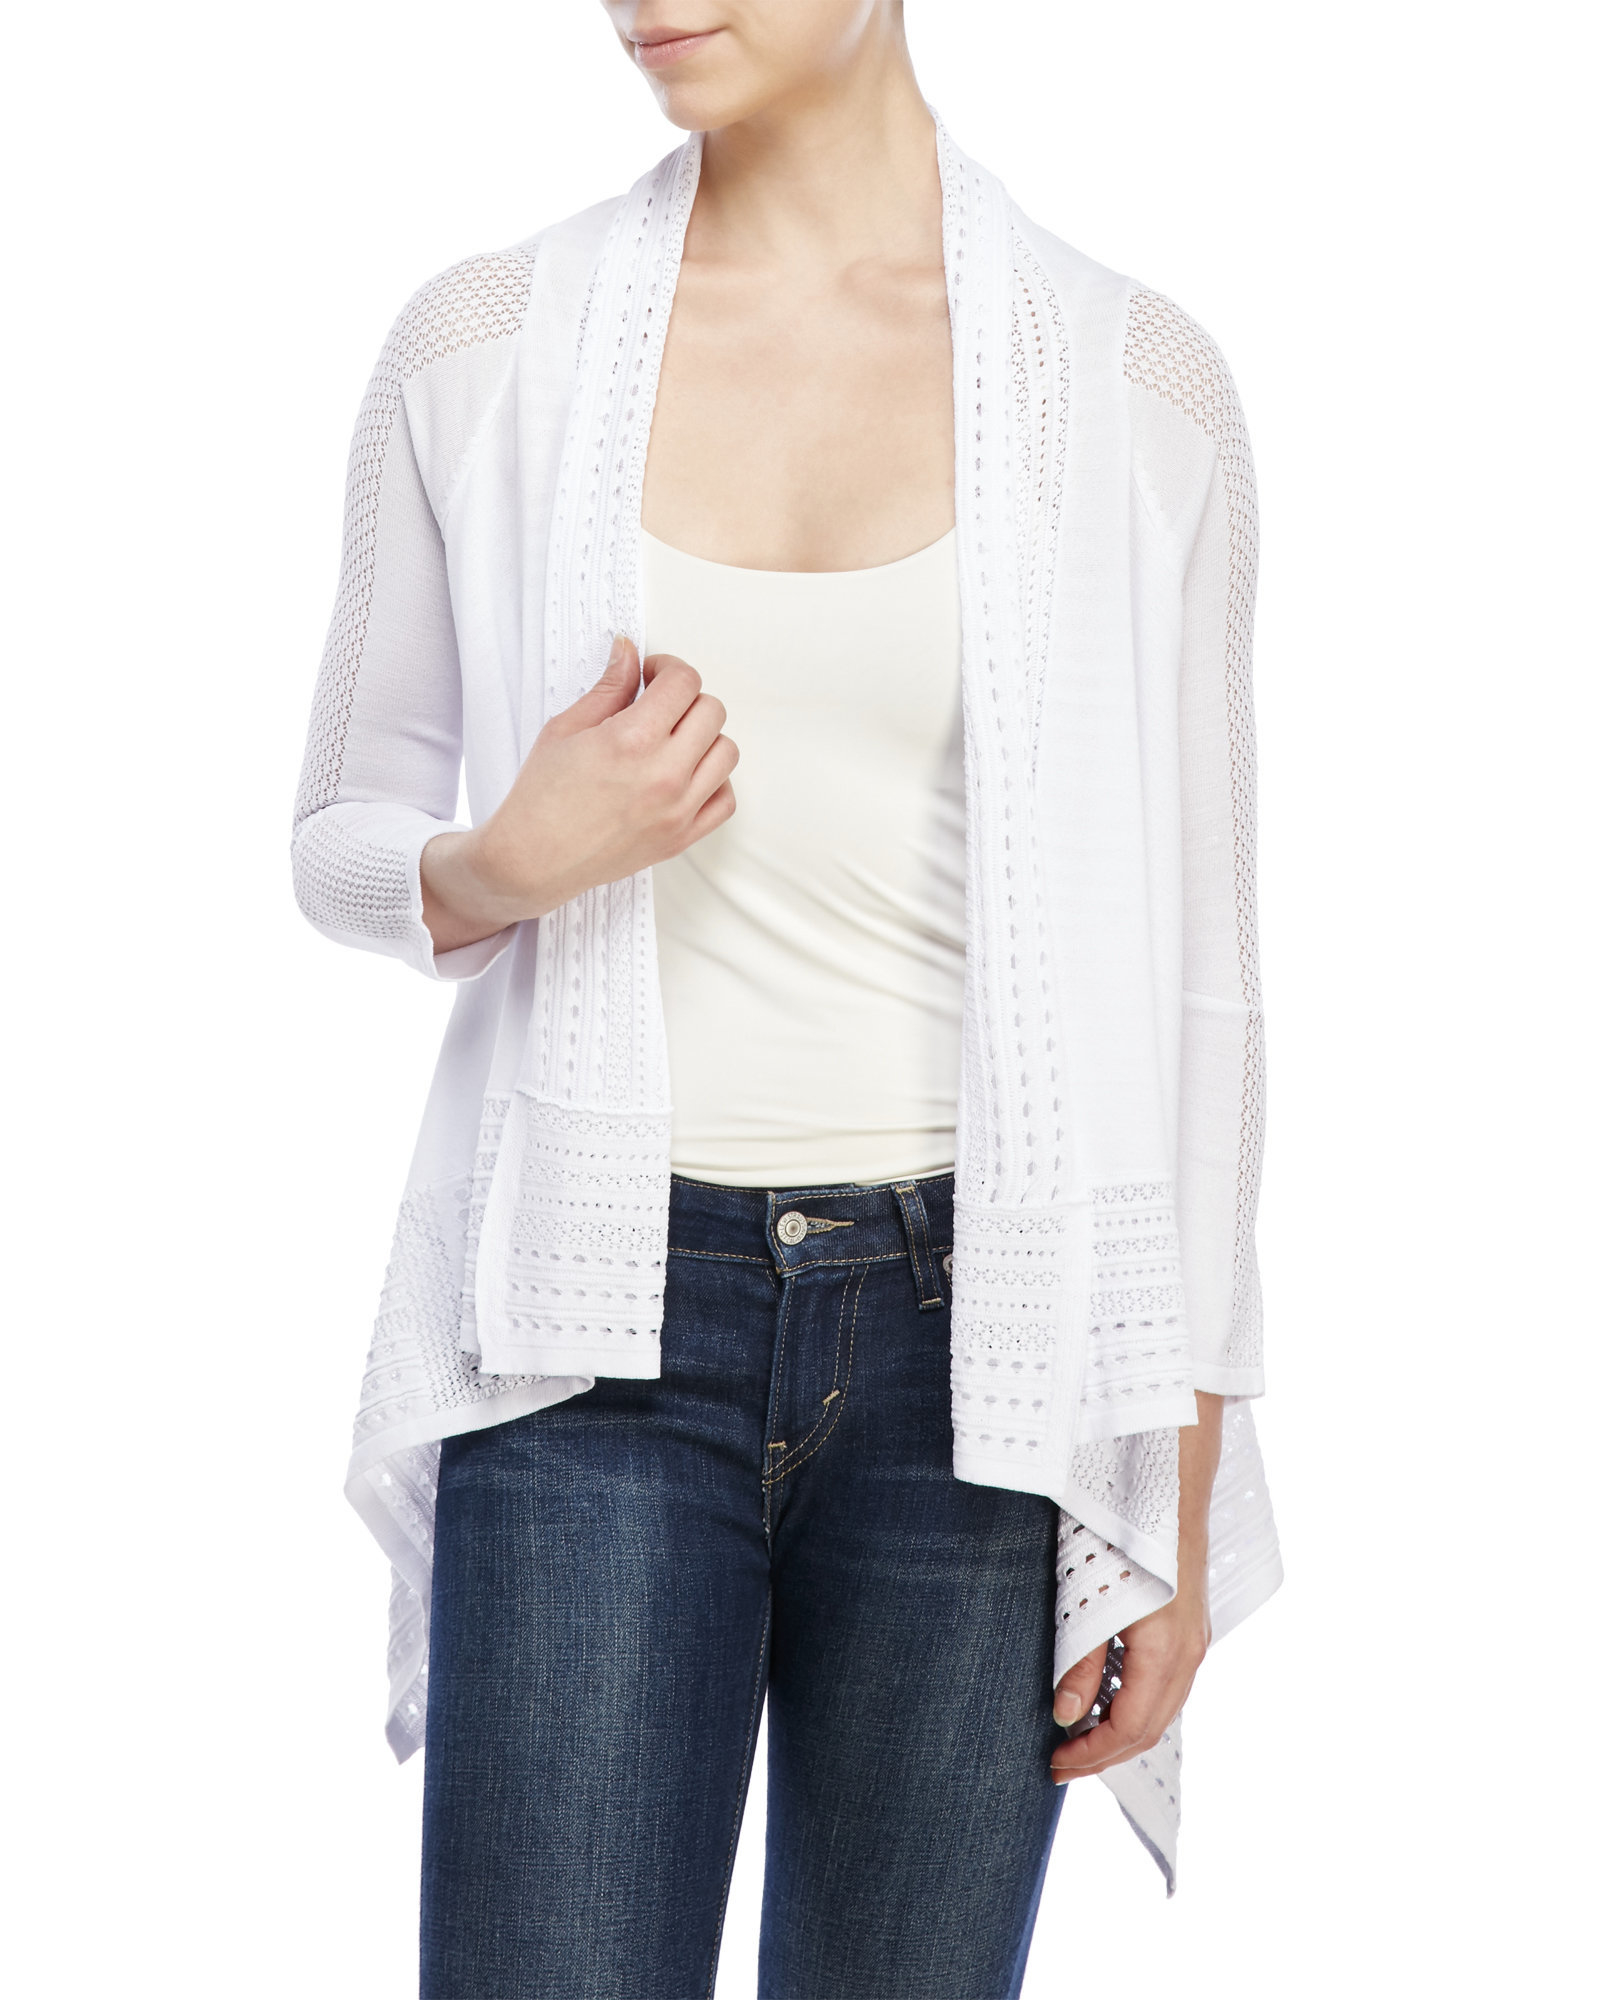 Lyst - Cable & Gauge Drape Front Cardigan in White